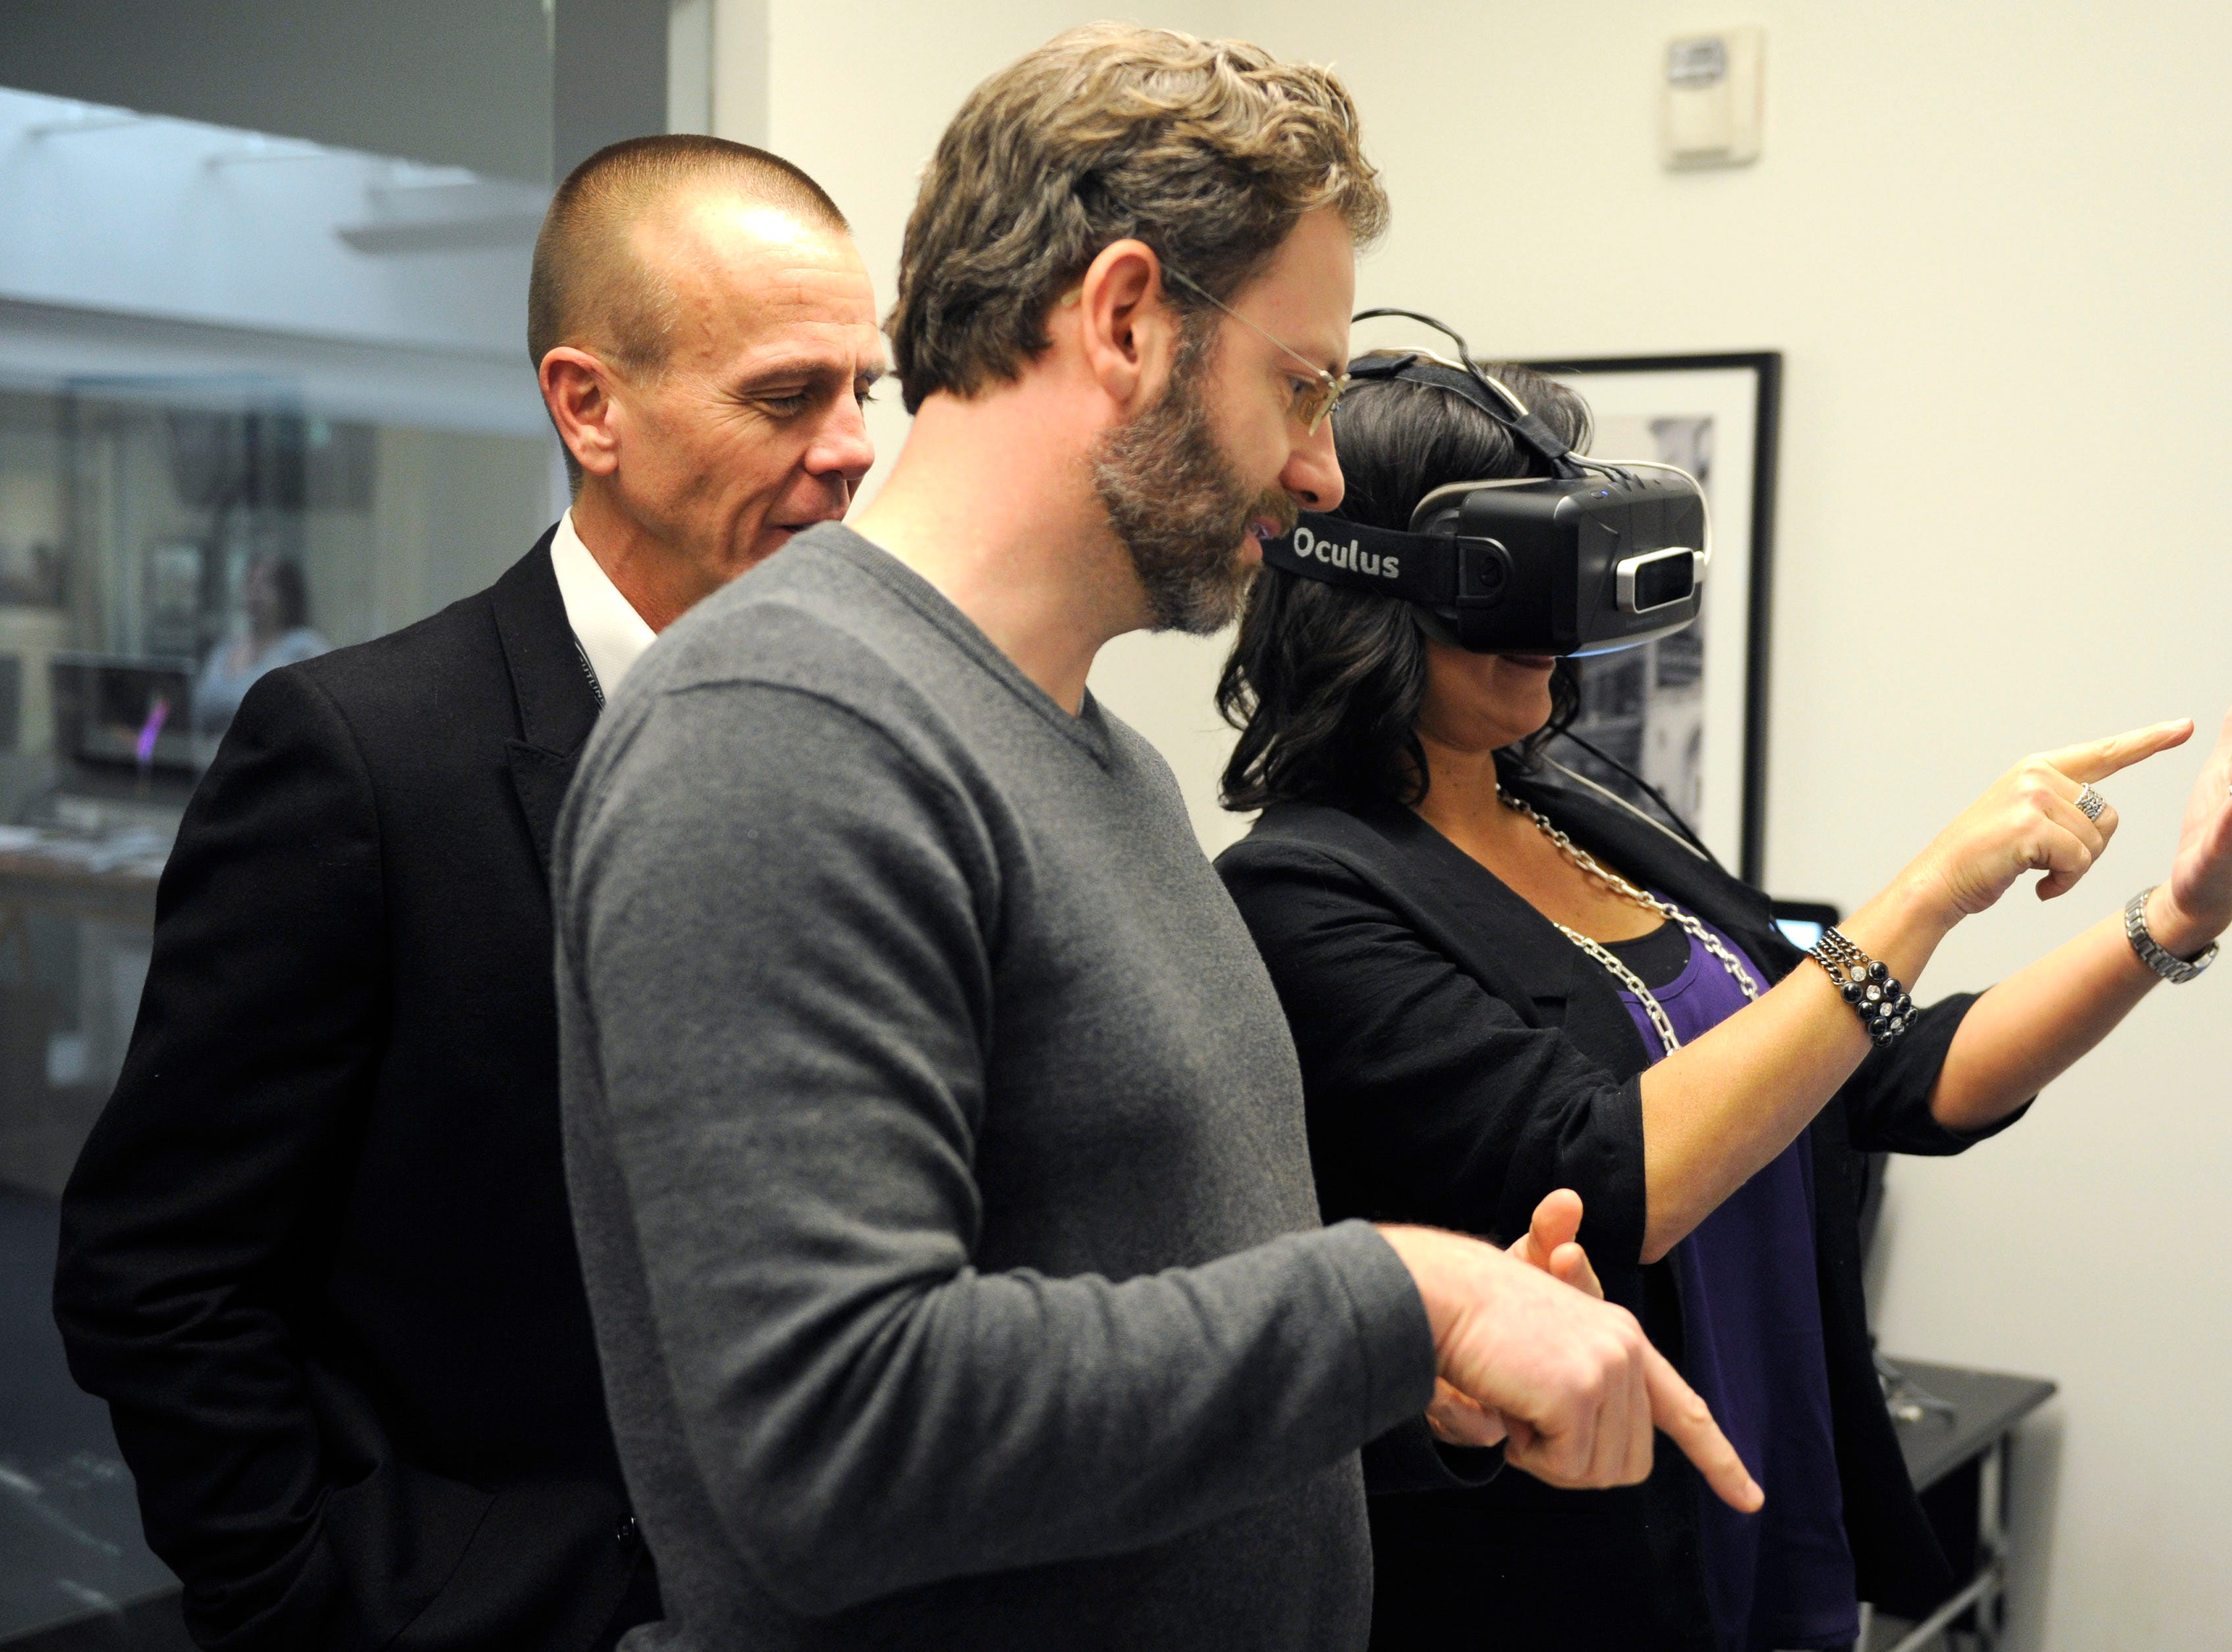 The Tombras Group senior vice president David Avery, left, and creative technologist Andre Hayter, center, assist executive assistant Krista Stevenson in using the companies newly developed Virtual Reality Lab using Oculus Rift, Monday, Feb. 8, 2016.